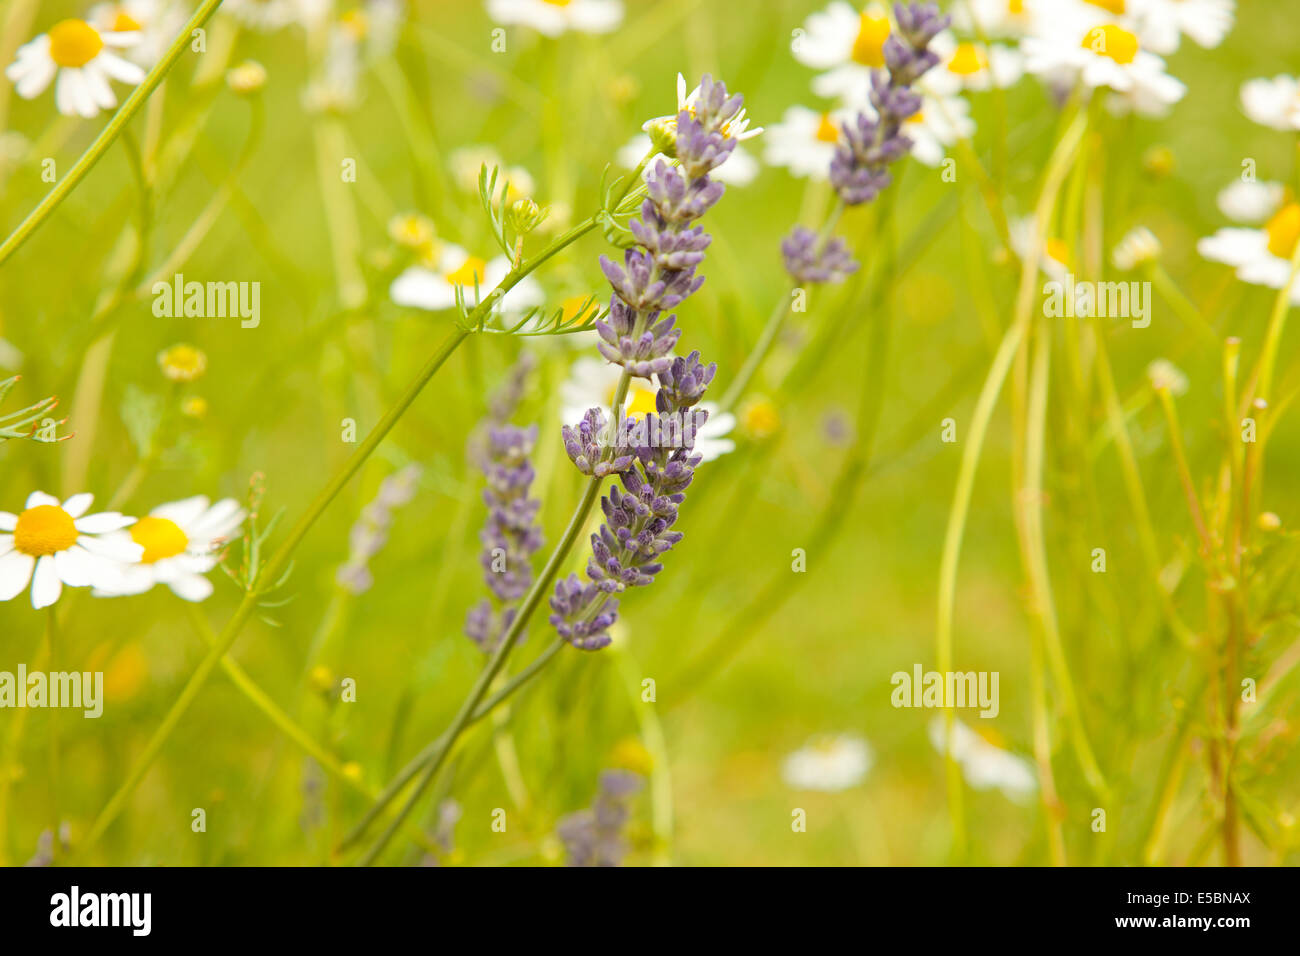 chamomiles and lavenders growing together - Stock Image